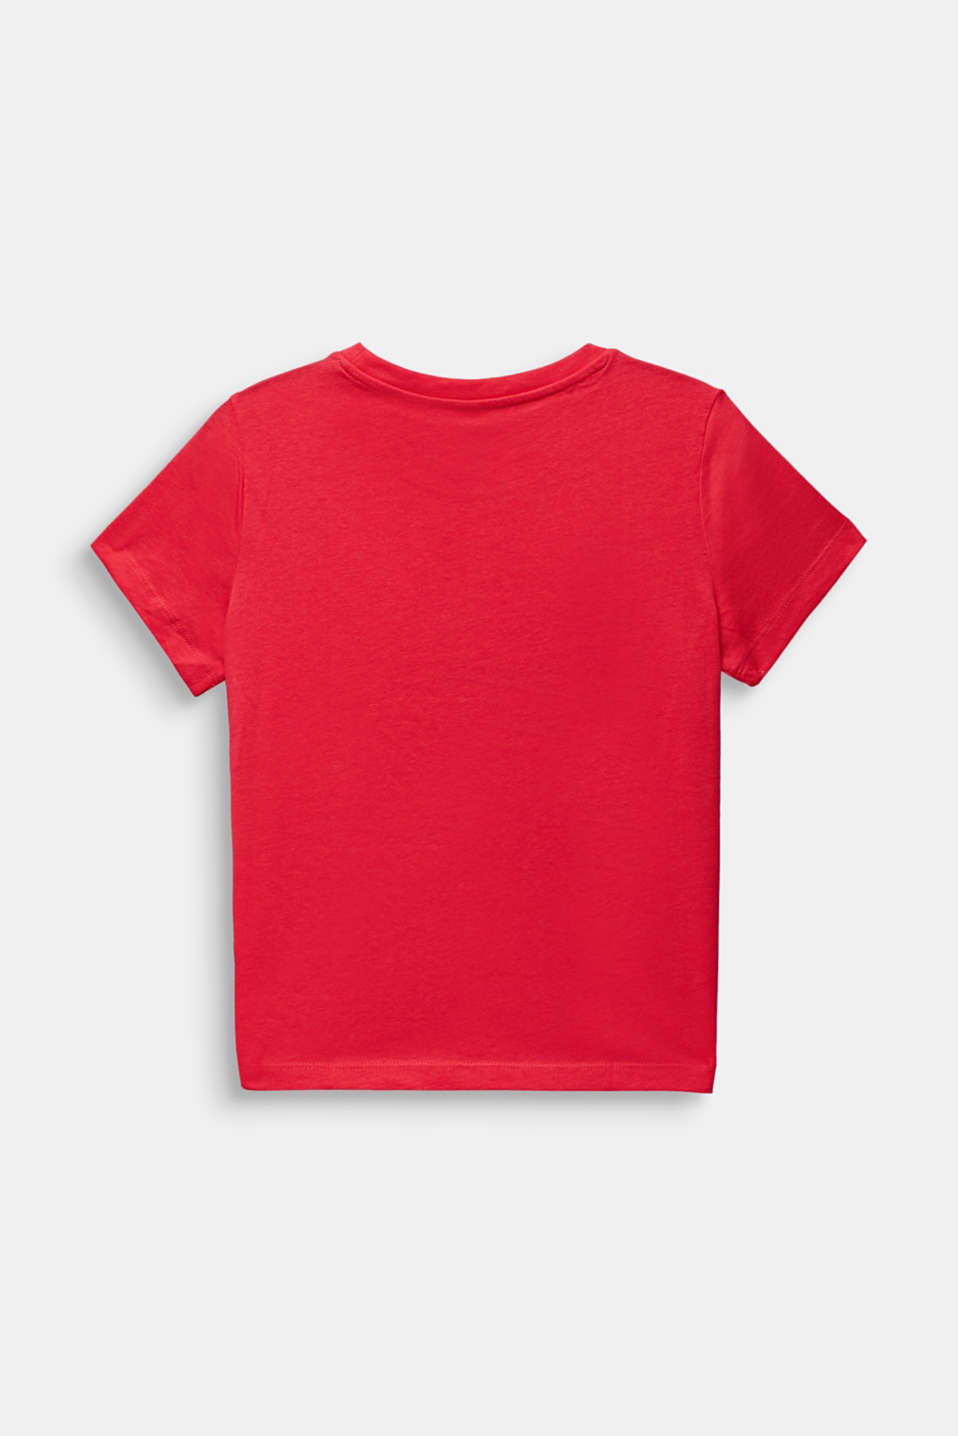 Front print T-shirt, 100% cotton, LCRASPBERRY, detail image number 1